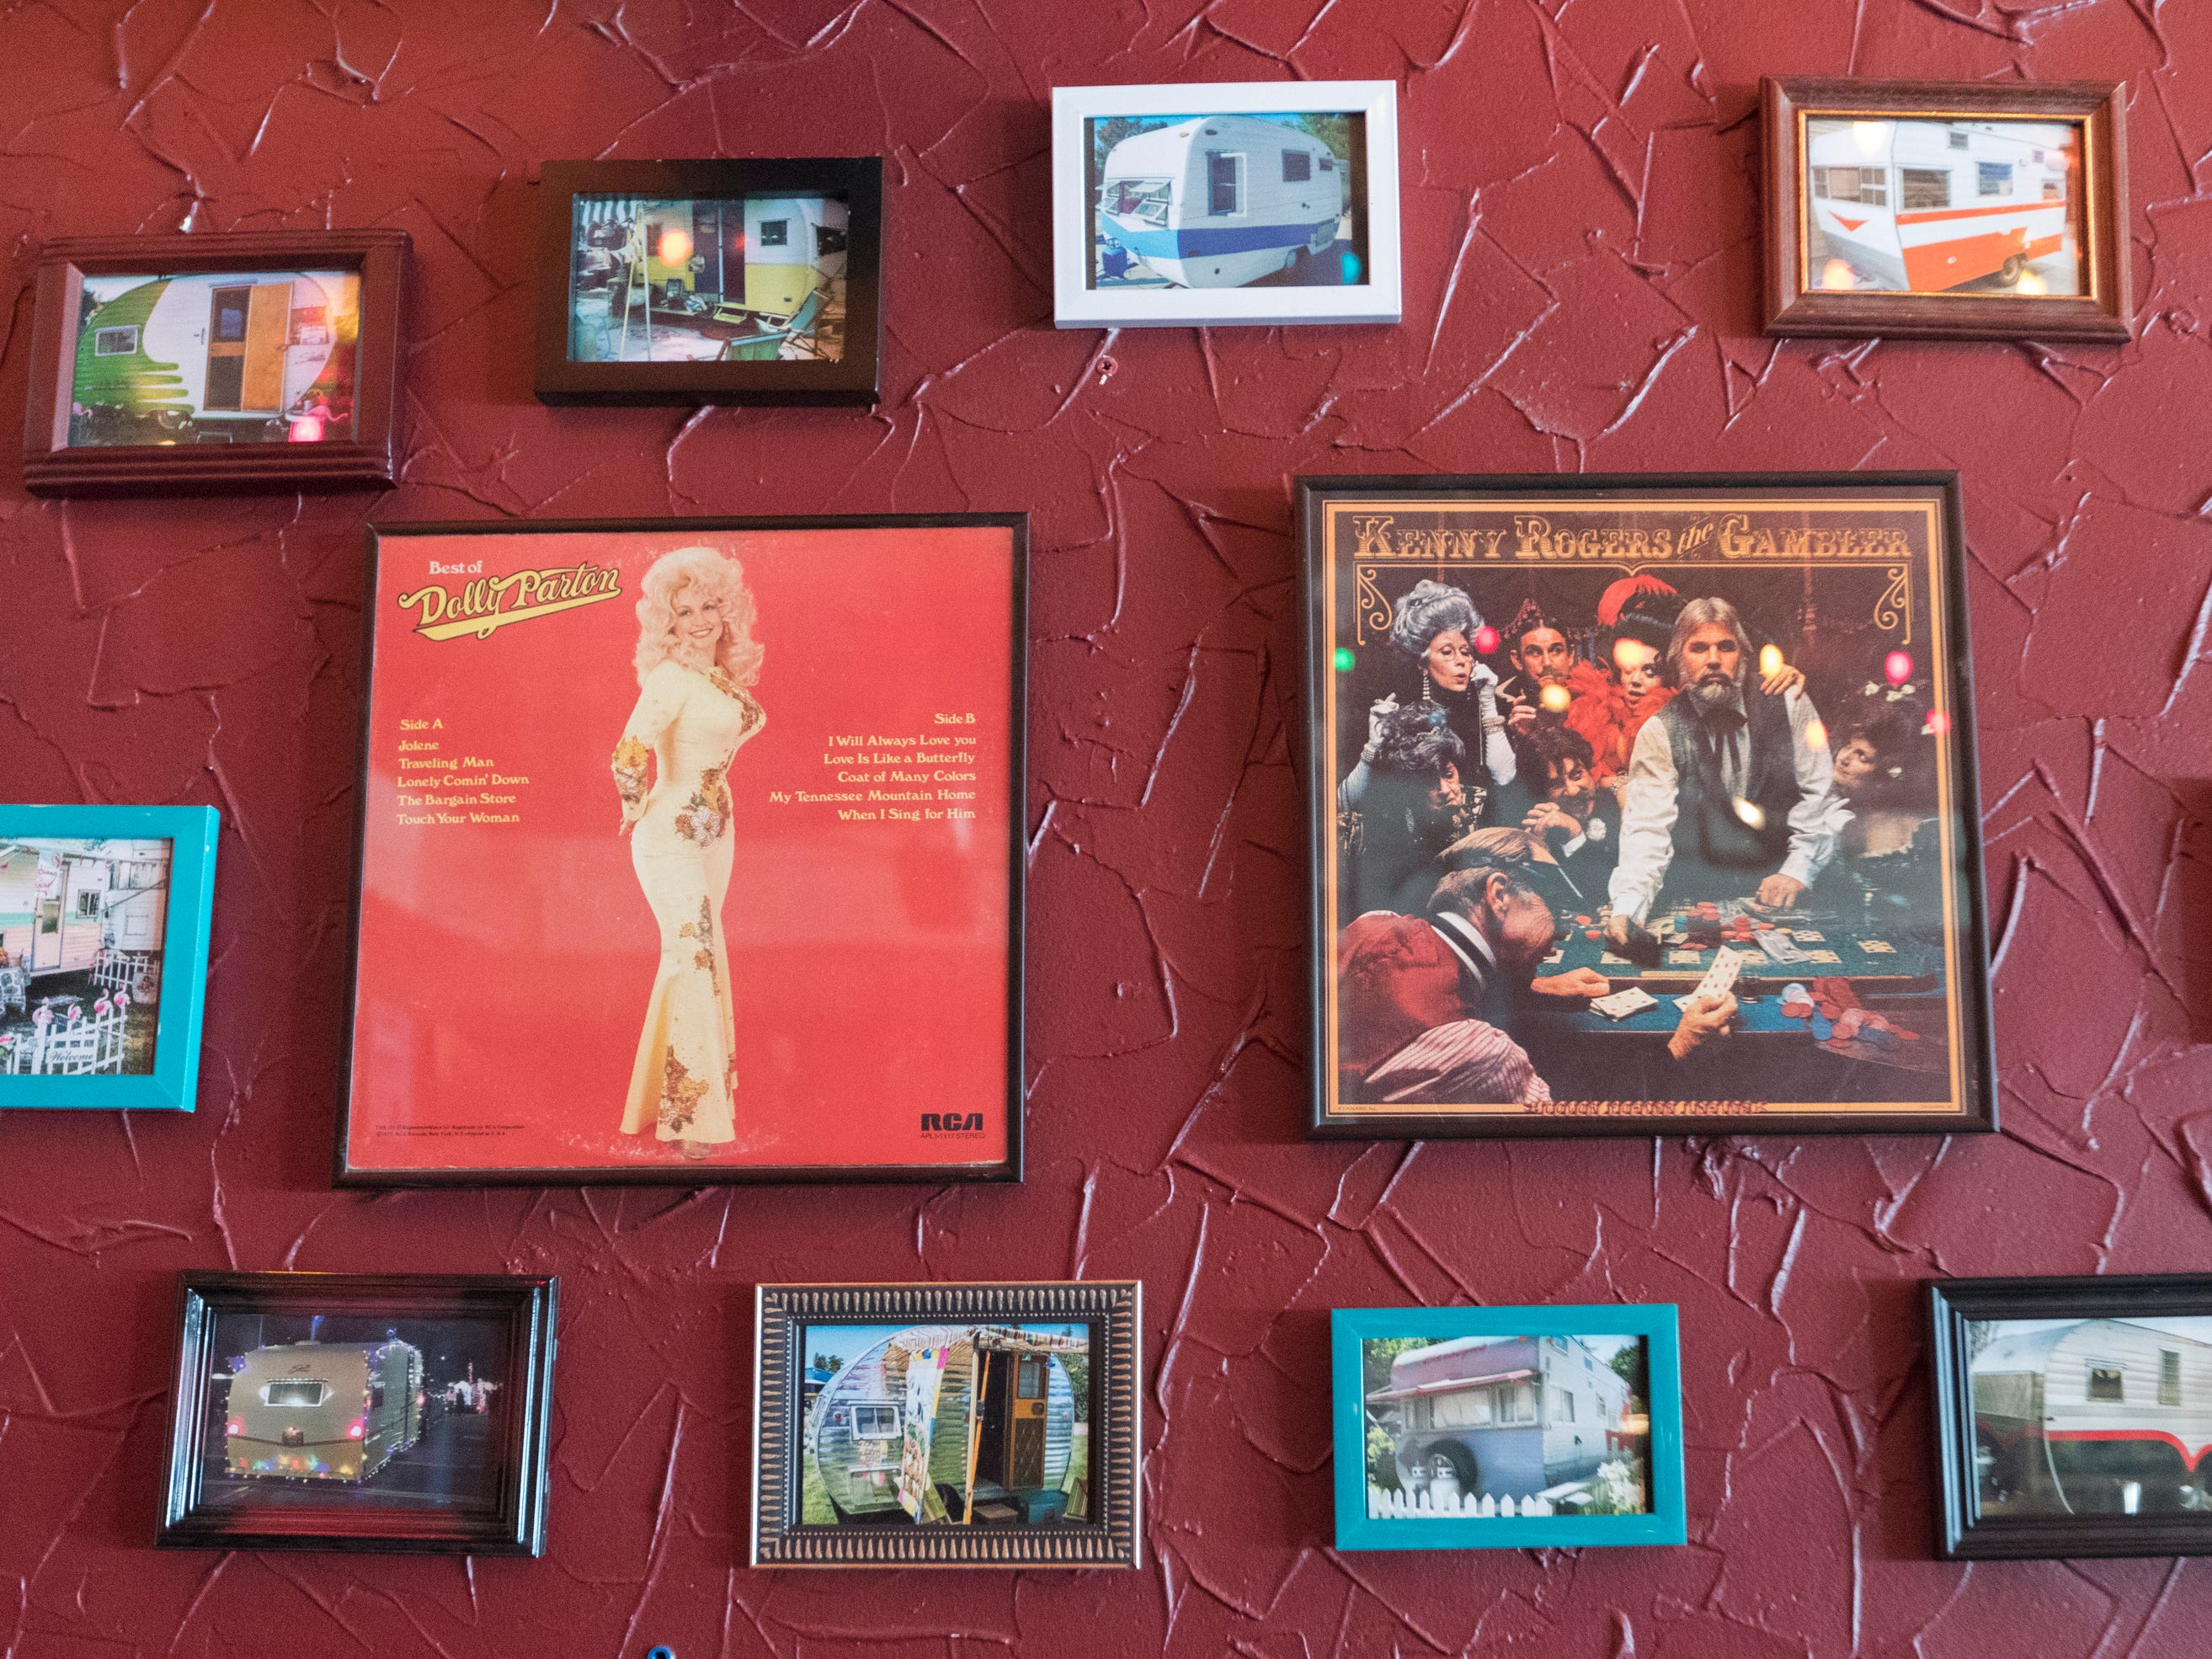 Album covers and photographs decorate a wall Tuesday, April 9, 2019 at the soon-to-open Trailer Park Tavern, 2989 S. Kinnickinnic Ave. in Milwaukee, Wis. The bar, owned by Jordon (CQ) Bledsoe, is to open in May.